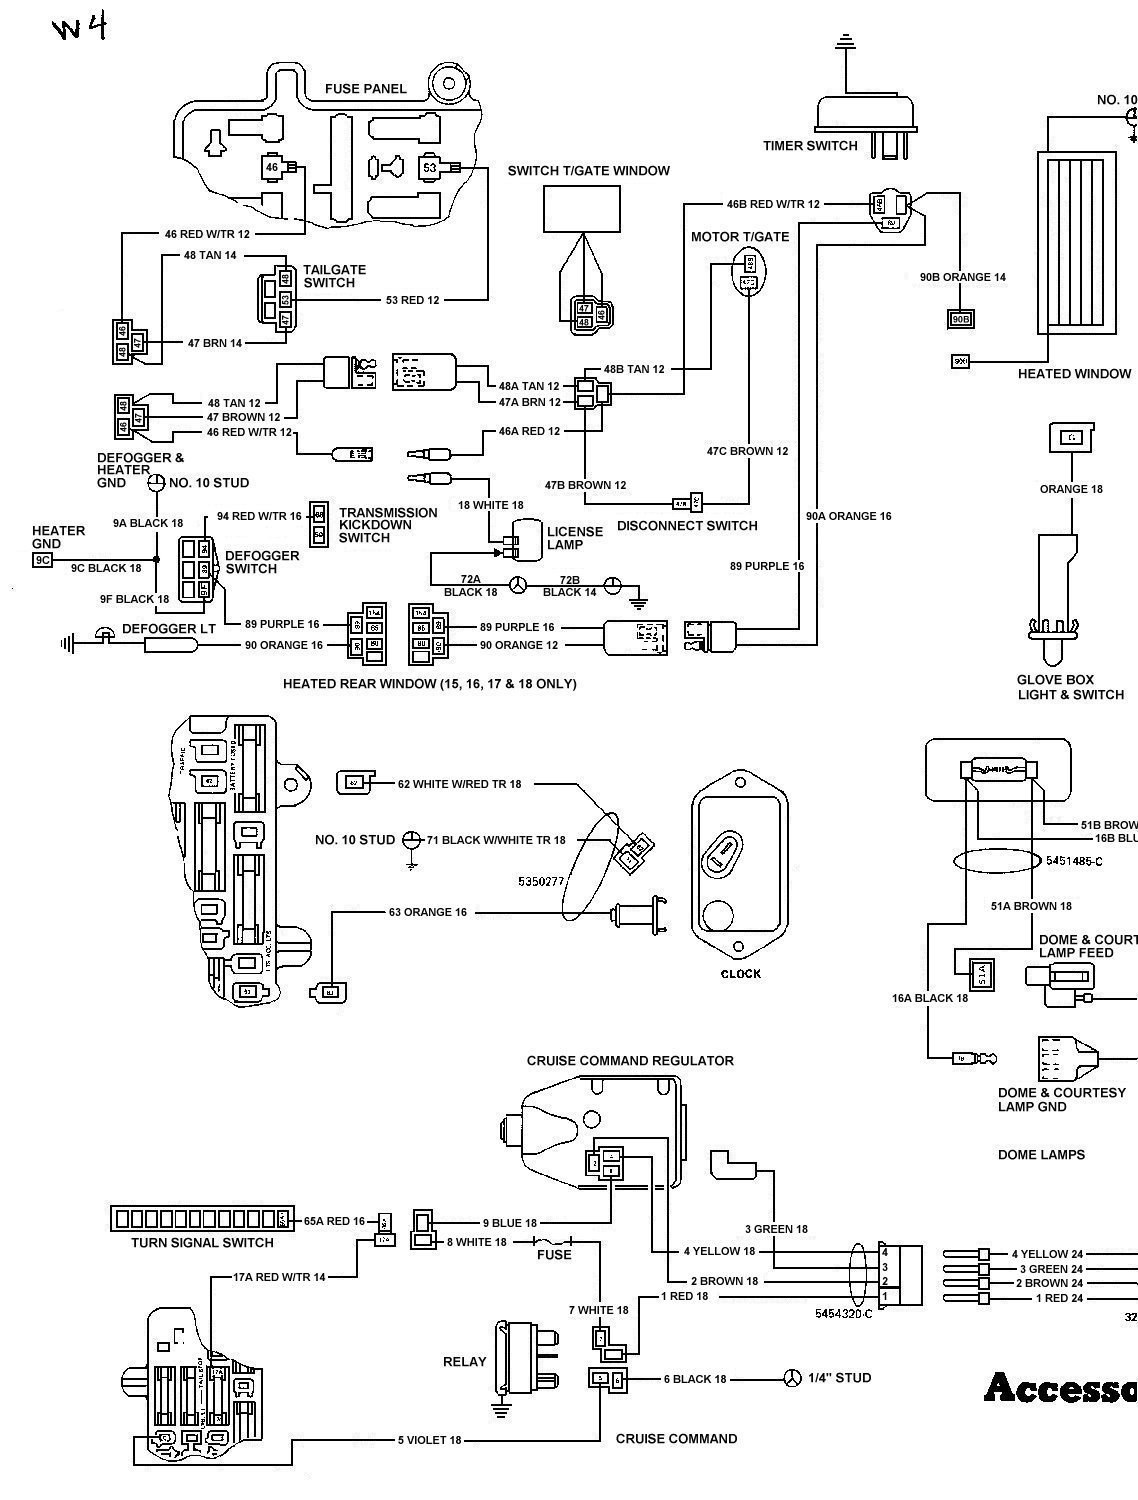 84 Jeep Wiring Diagram Electronic Wiring Diagrams Jeep Wrangler Wiring  Diagram Jeep Engineering Diagram